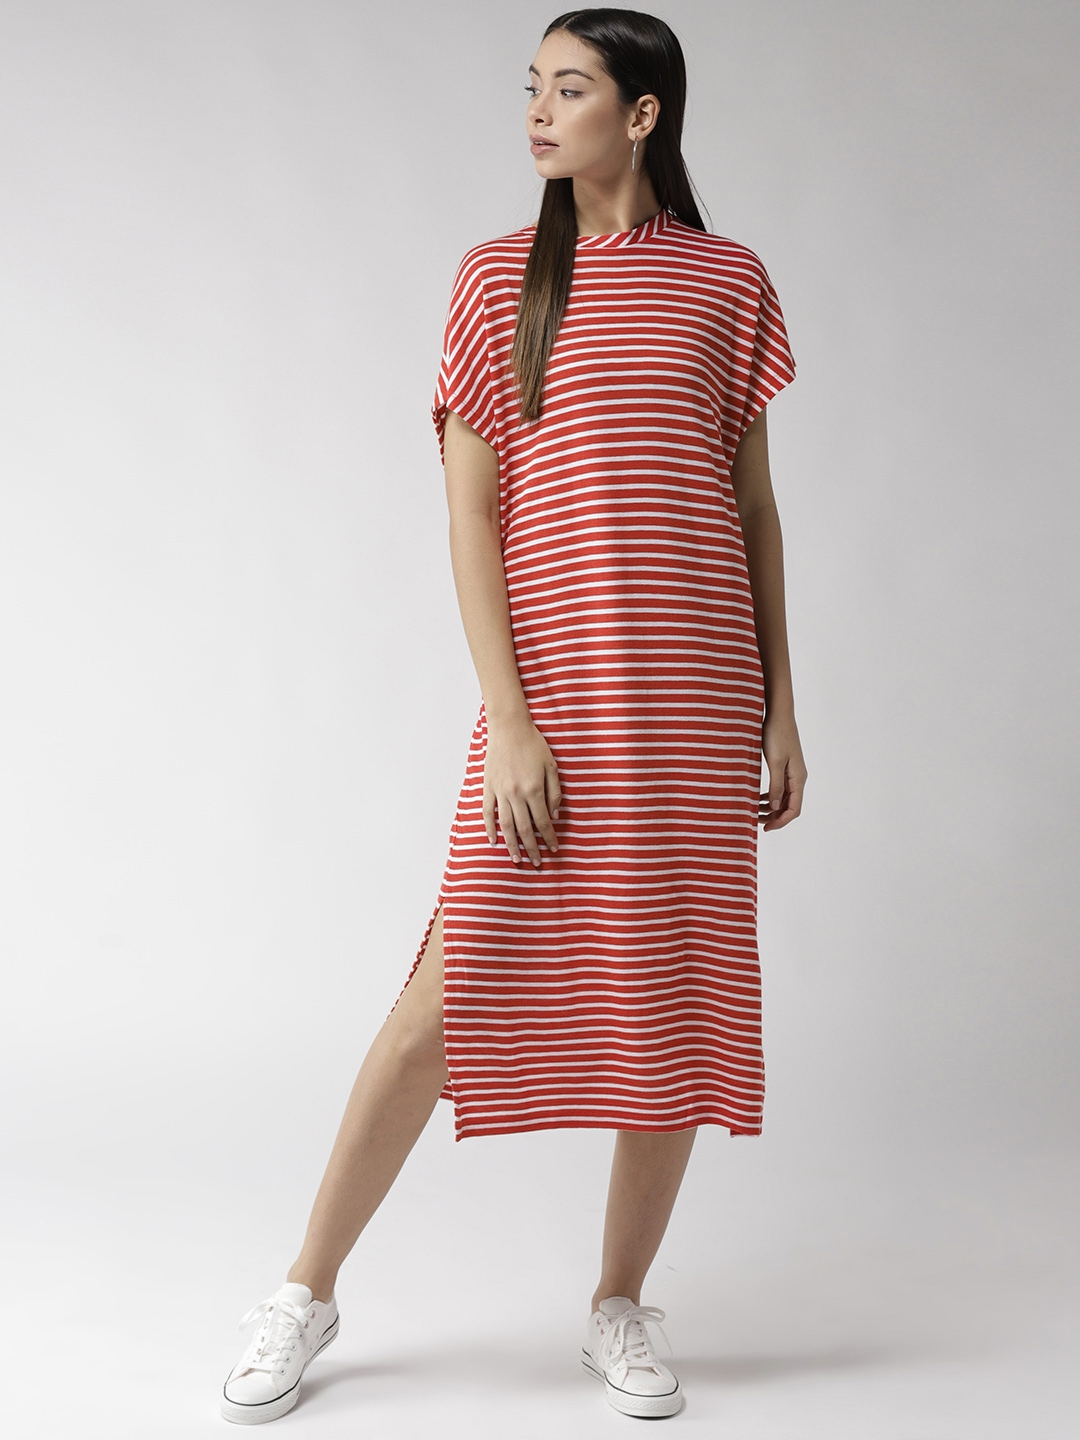 28939ef7c6884 Buy Tommy Hilfiger Women Red & White Striped T Shirt Dress - Dresses ...